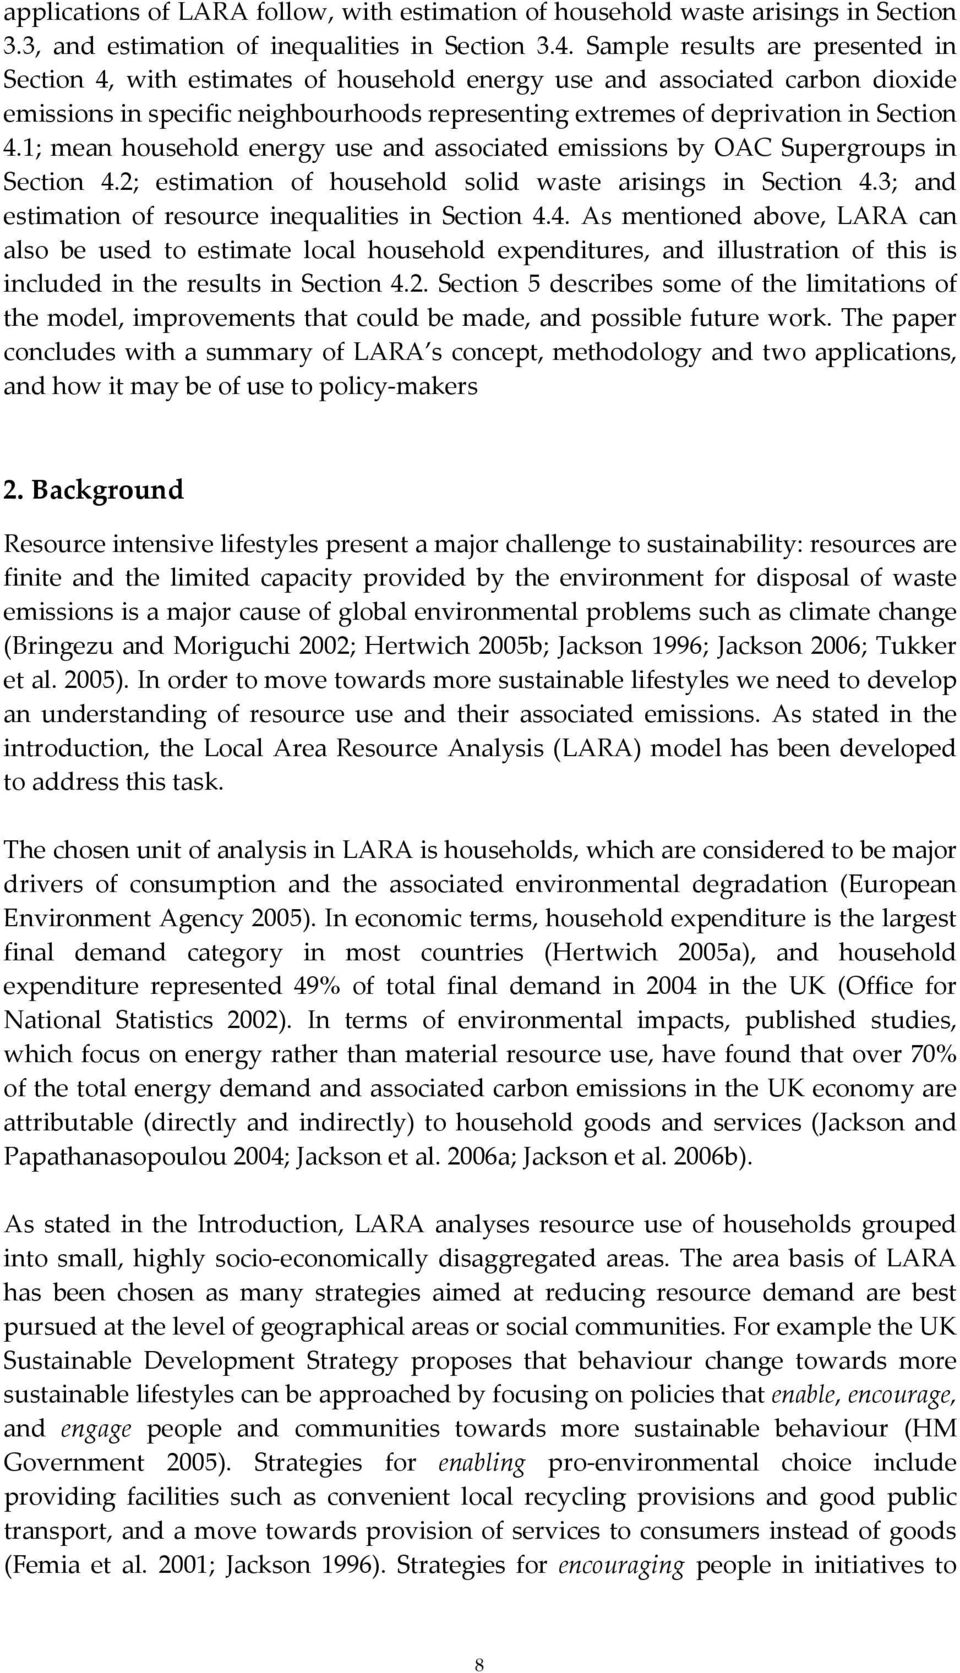 1; mean household energy use and associated emissions by OAC Supergroups in Section 4.2; estimation of household solid waste arisings in Section 4.